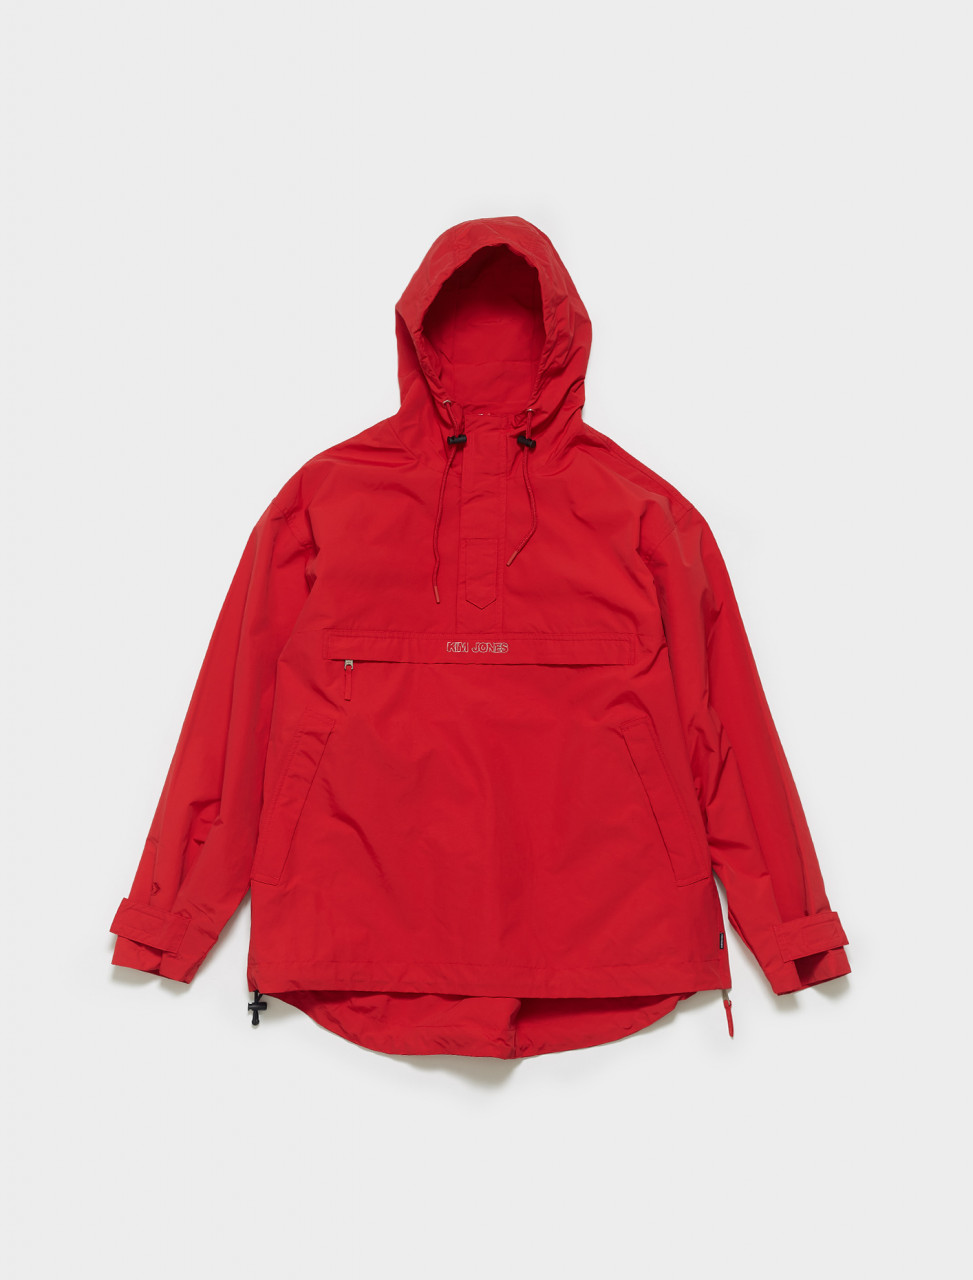 10021731-A01 CONVERSE X KIM JONES JACKET IN RED